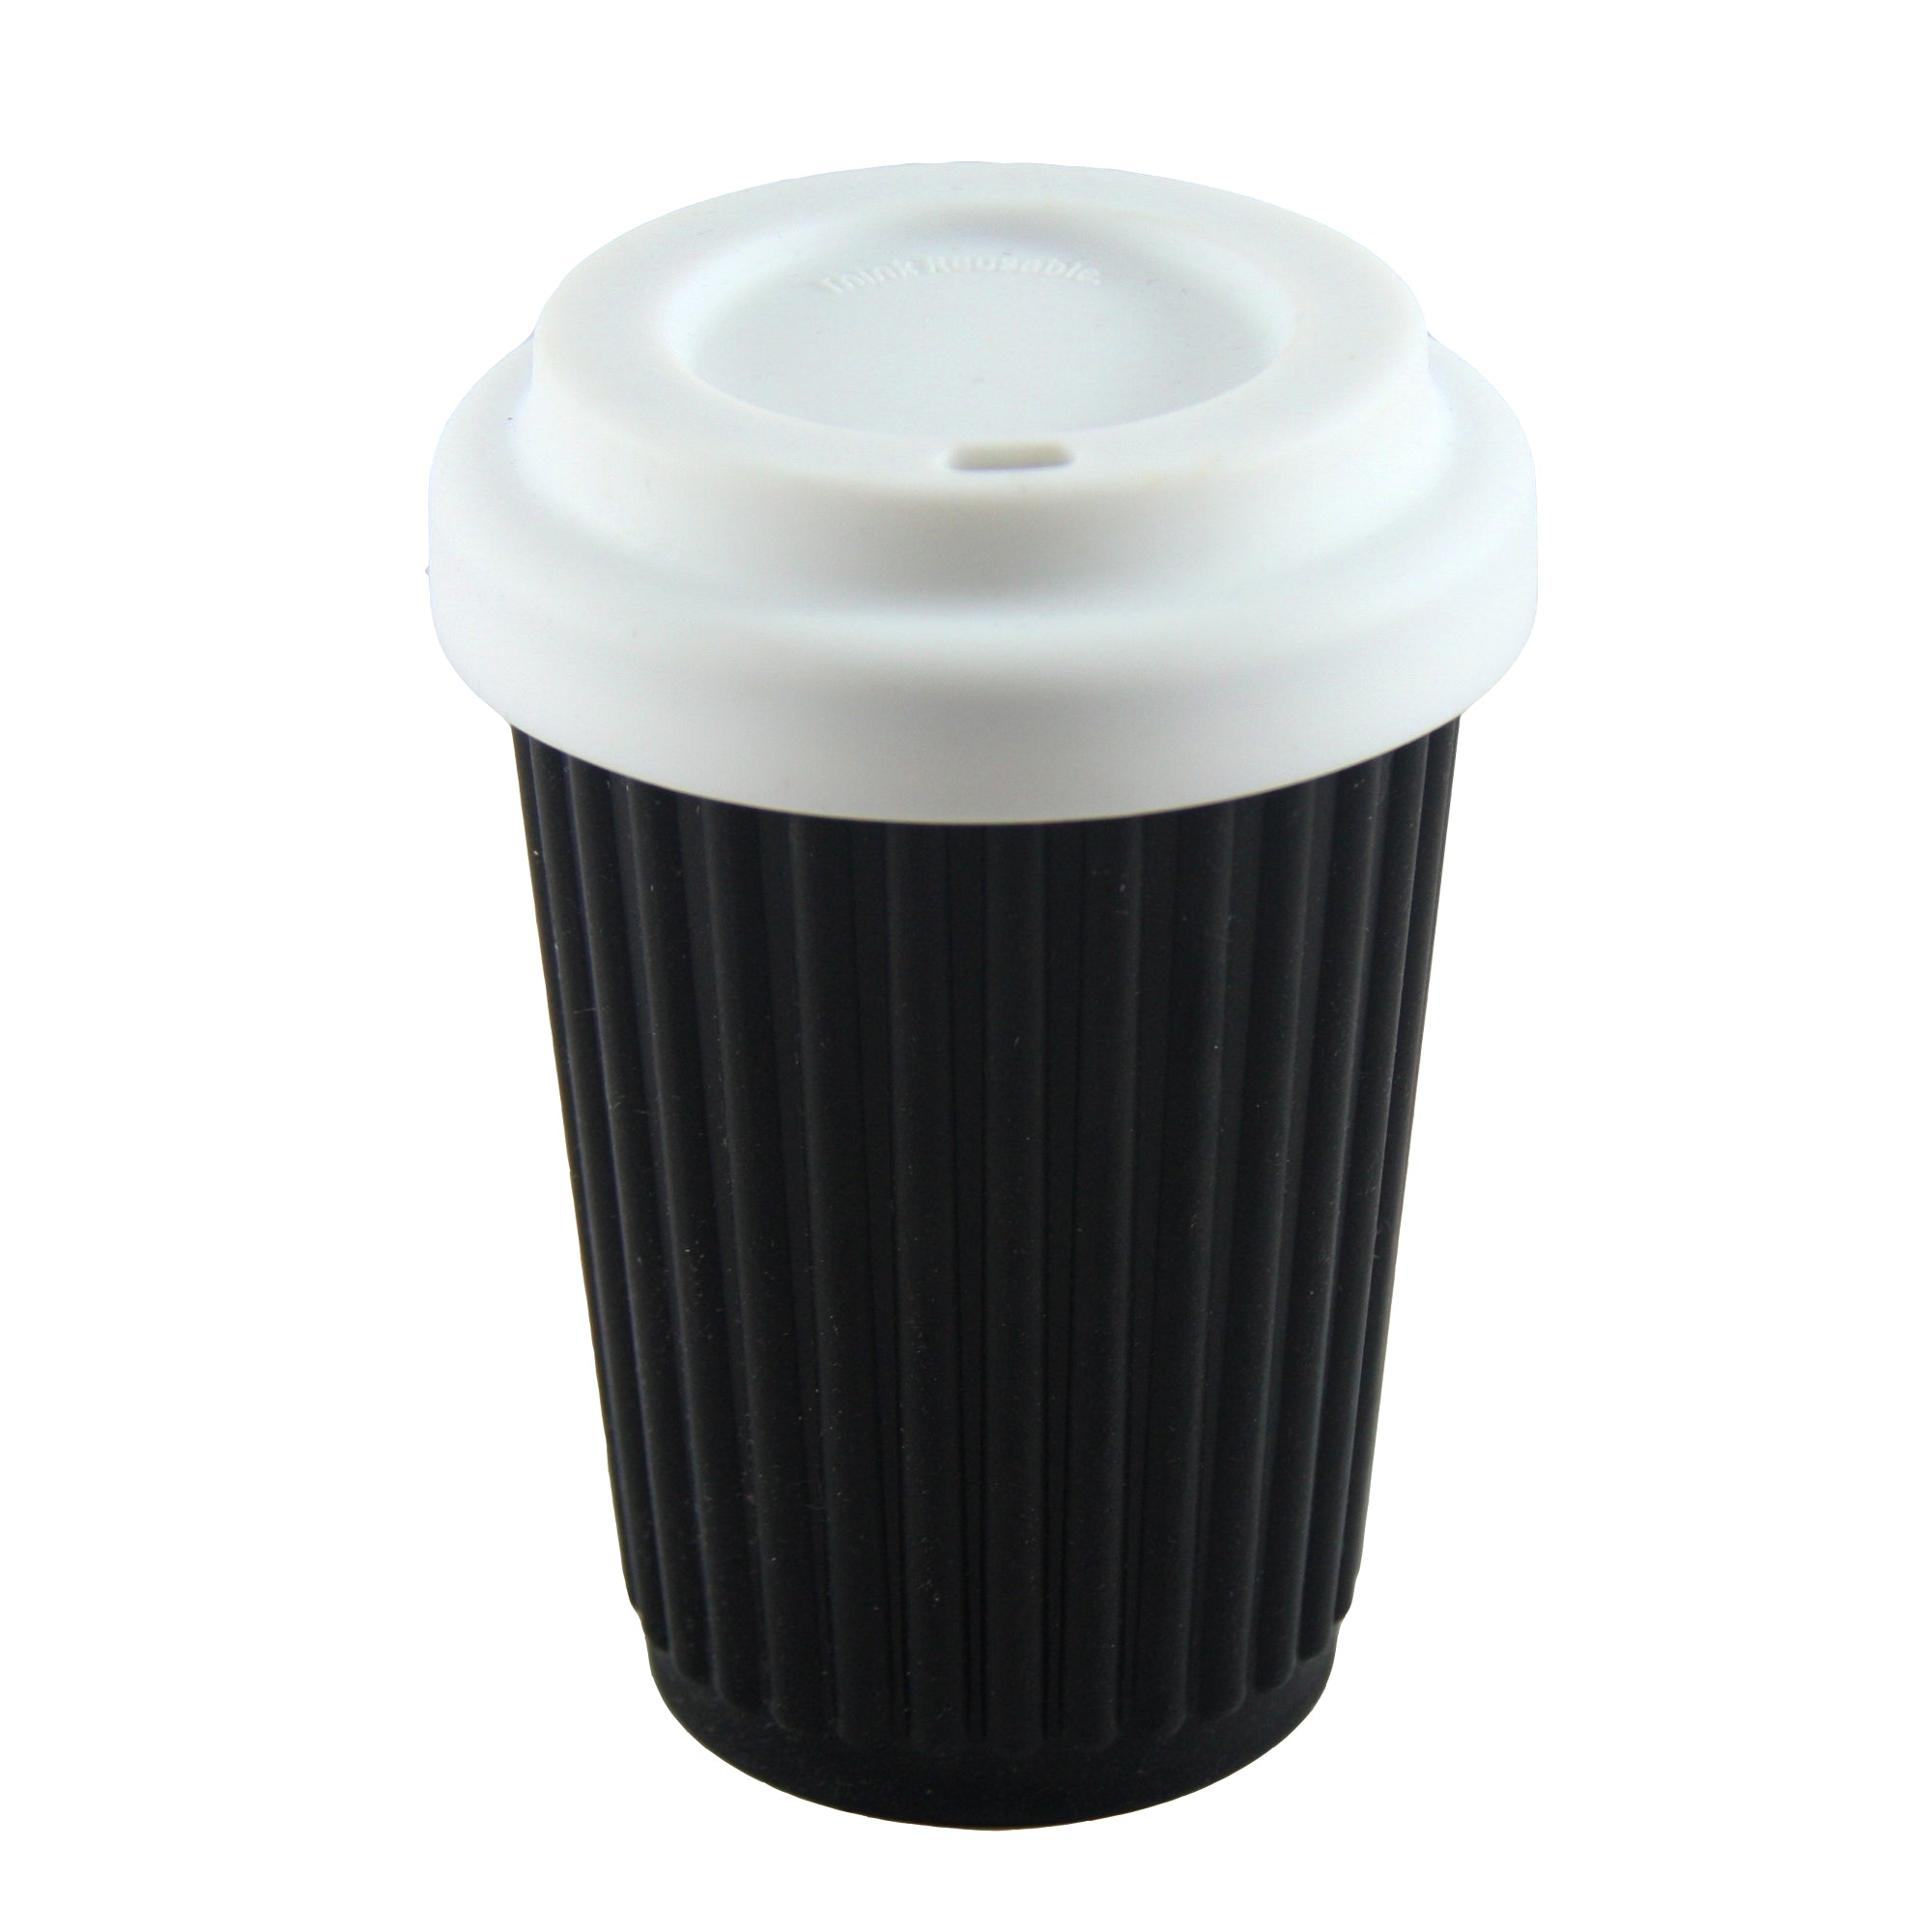 Onya | Onya Reusable coffee cup 355ml/12oz | Plastic Free Living | Environmentally Friendly Homewares